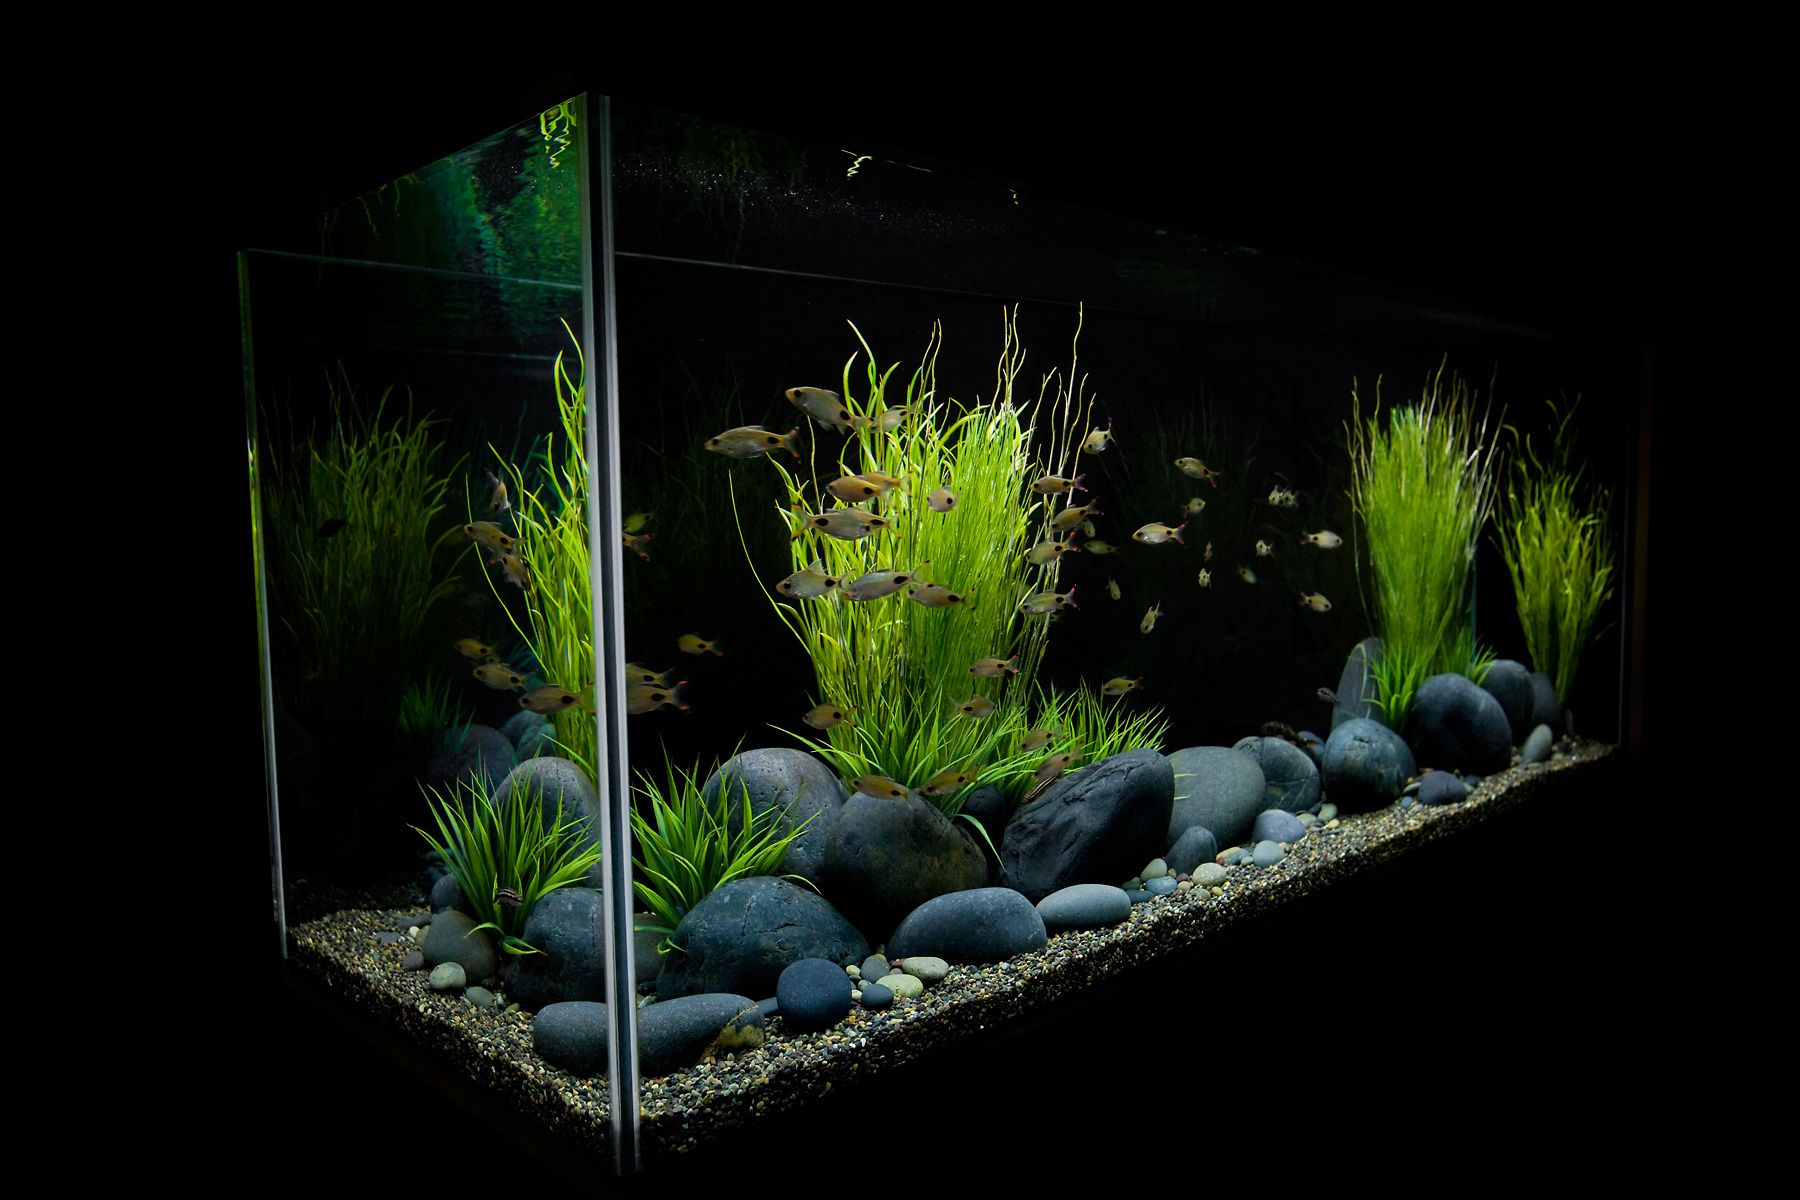 Freshwater aquarium fish tank pictures - Transform The Way Your Home Looks Using A Fish Tank